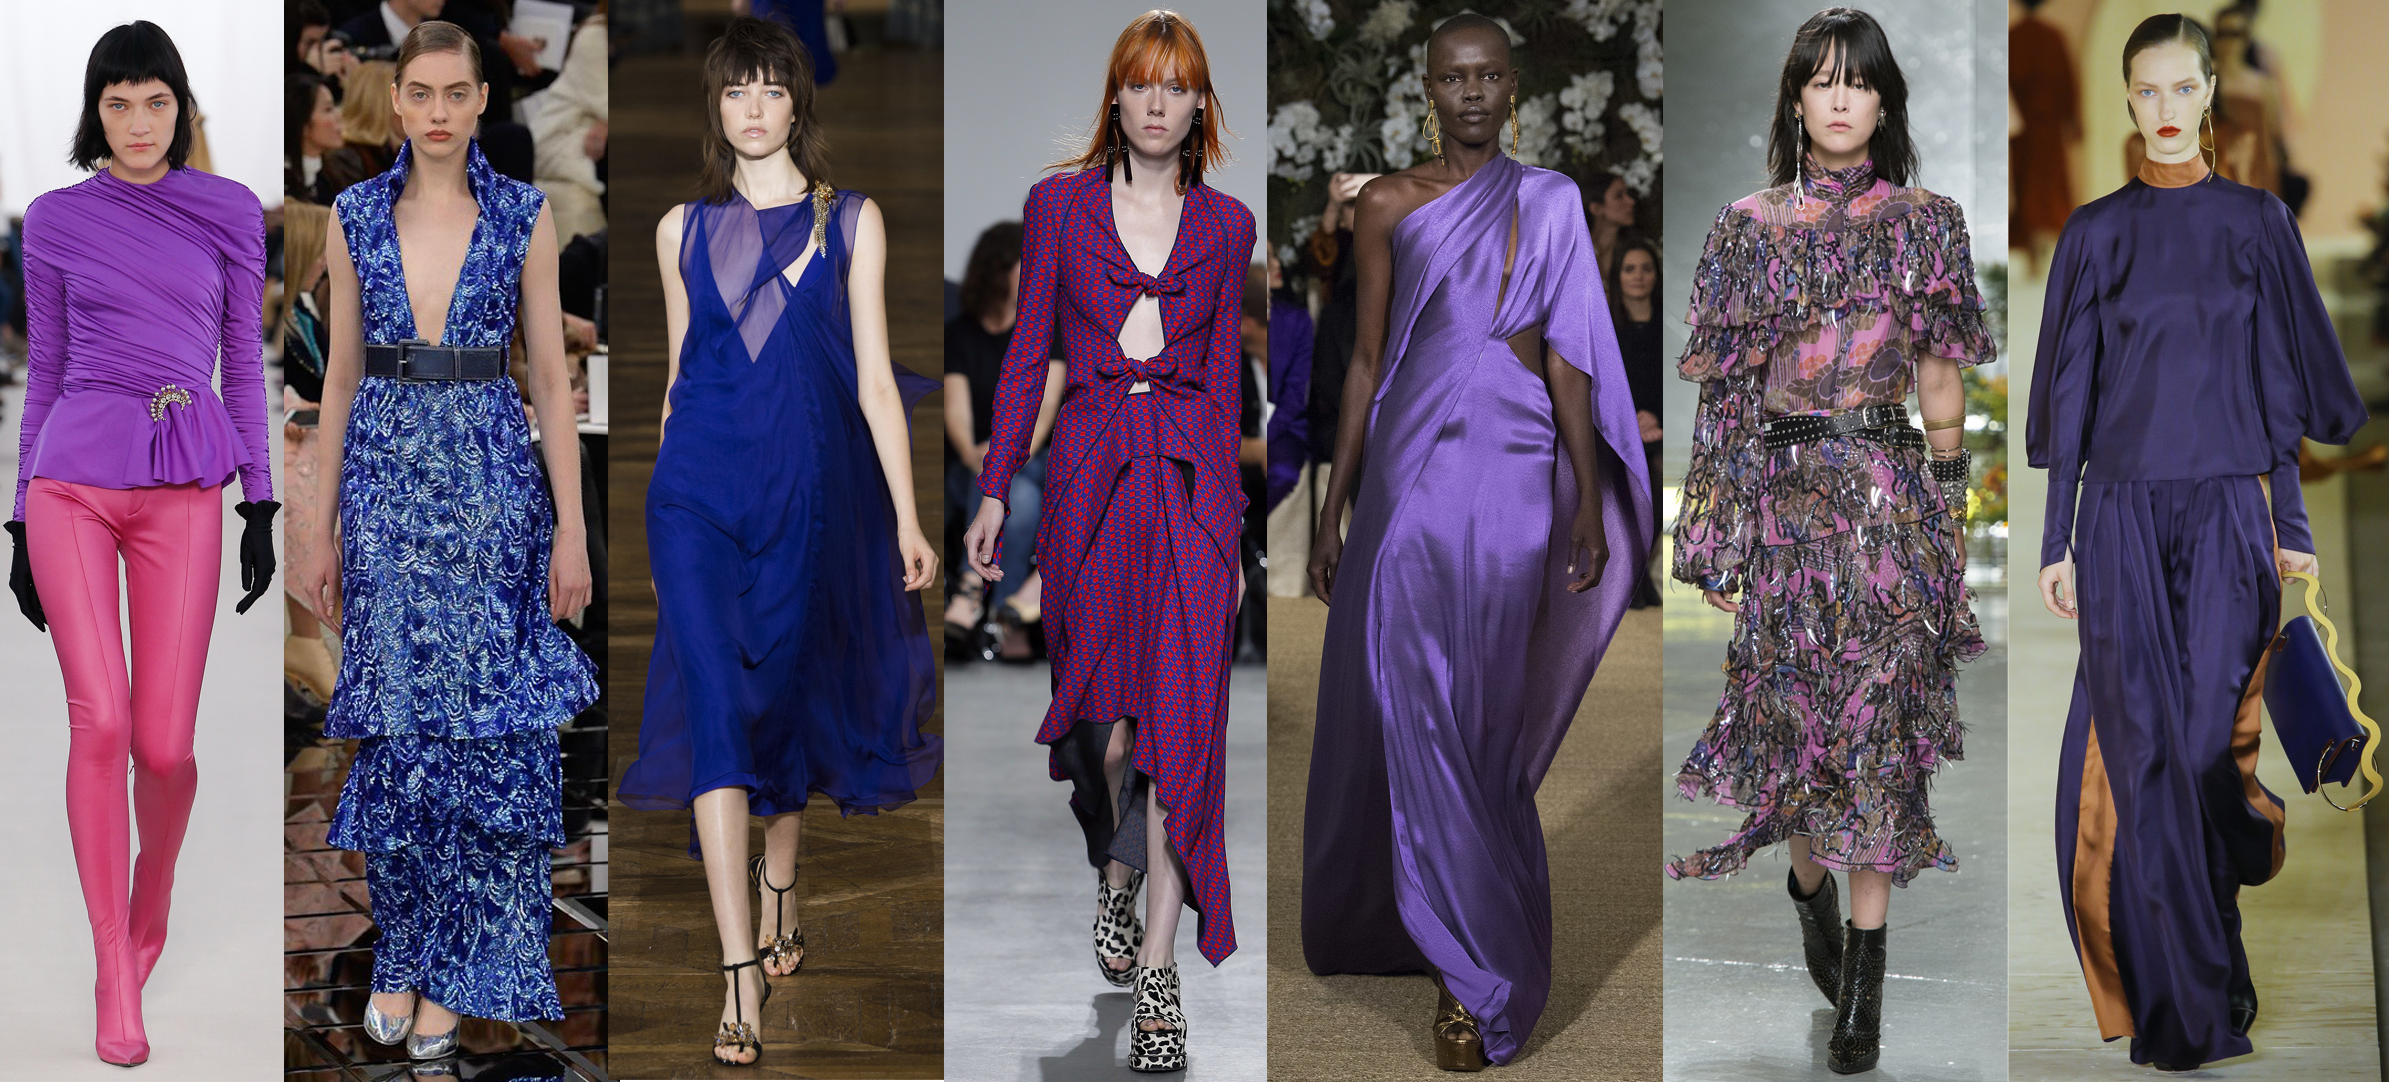 Left to Right: Balenciaga RTW SS17, Chanel Spring 17 Couture, Lanvin RTW SS17, Proenza Schouler RTW SS17, Ralph Lauren RTW SS17, Rodarte RTW SS17, Roksanda RTW SS17